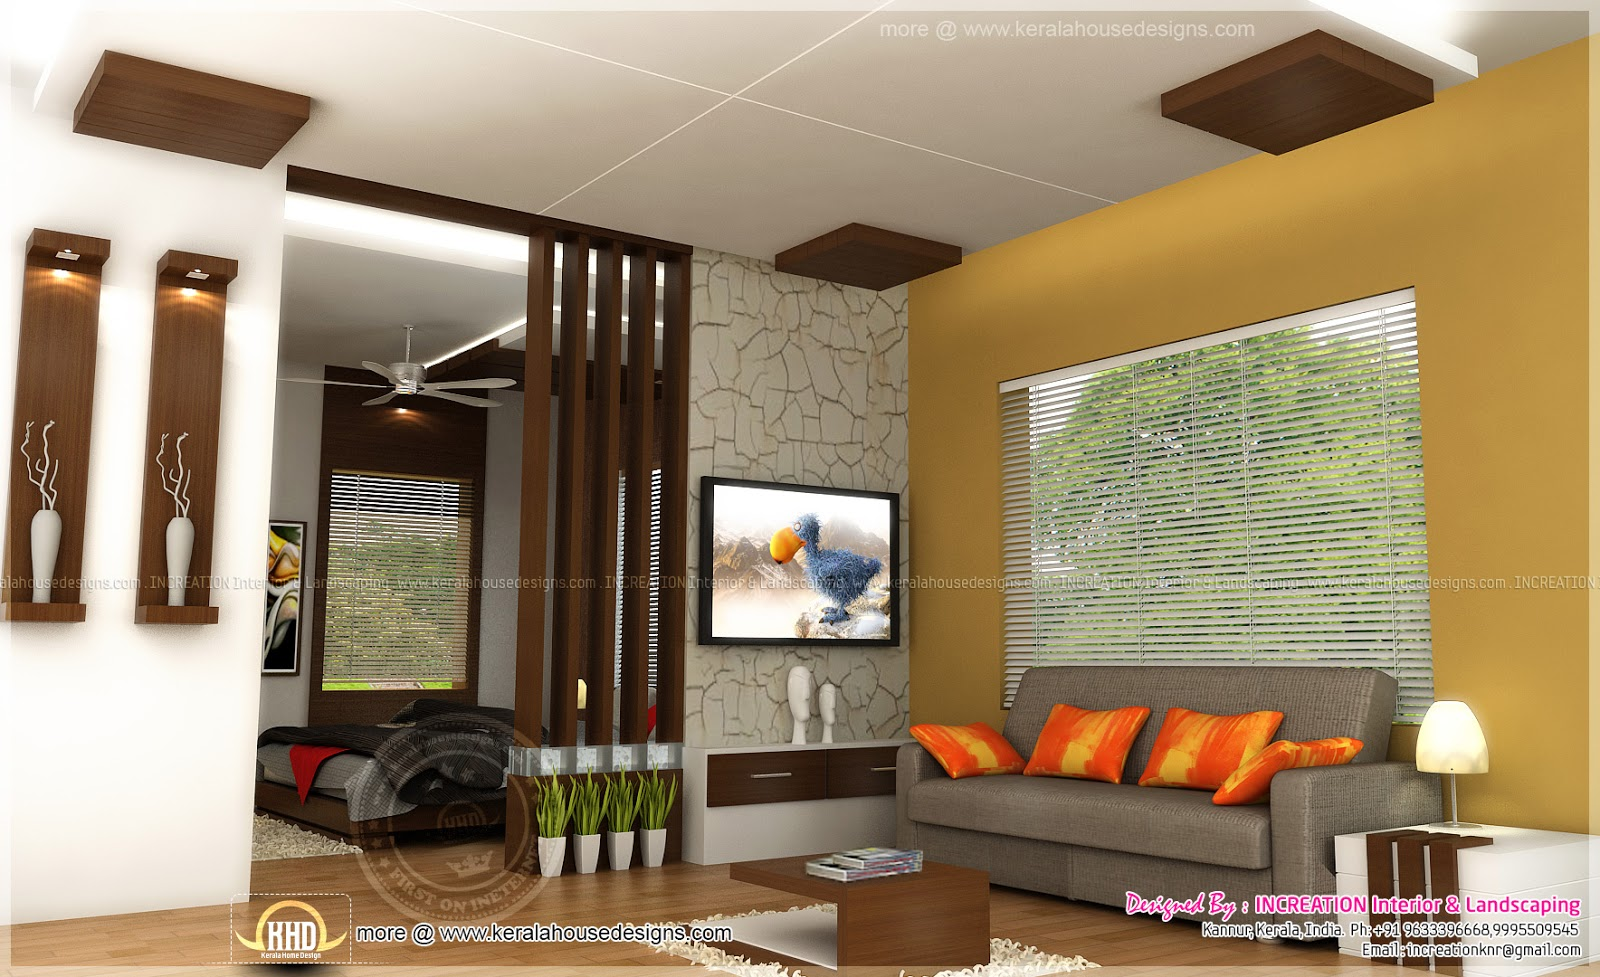 Interior designs from kannur kerala kerala home design for Home architecture design kerala